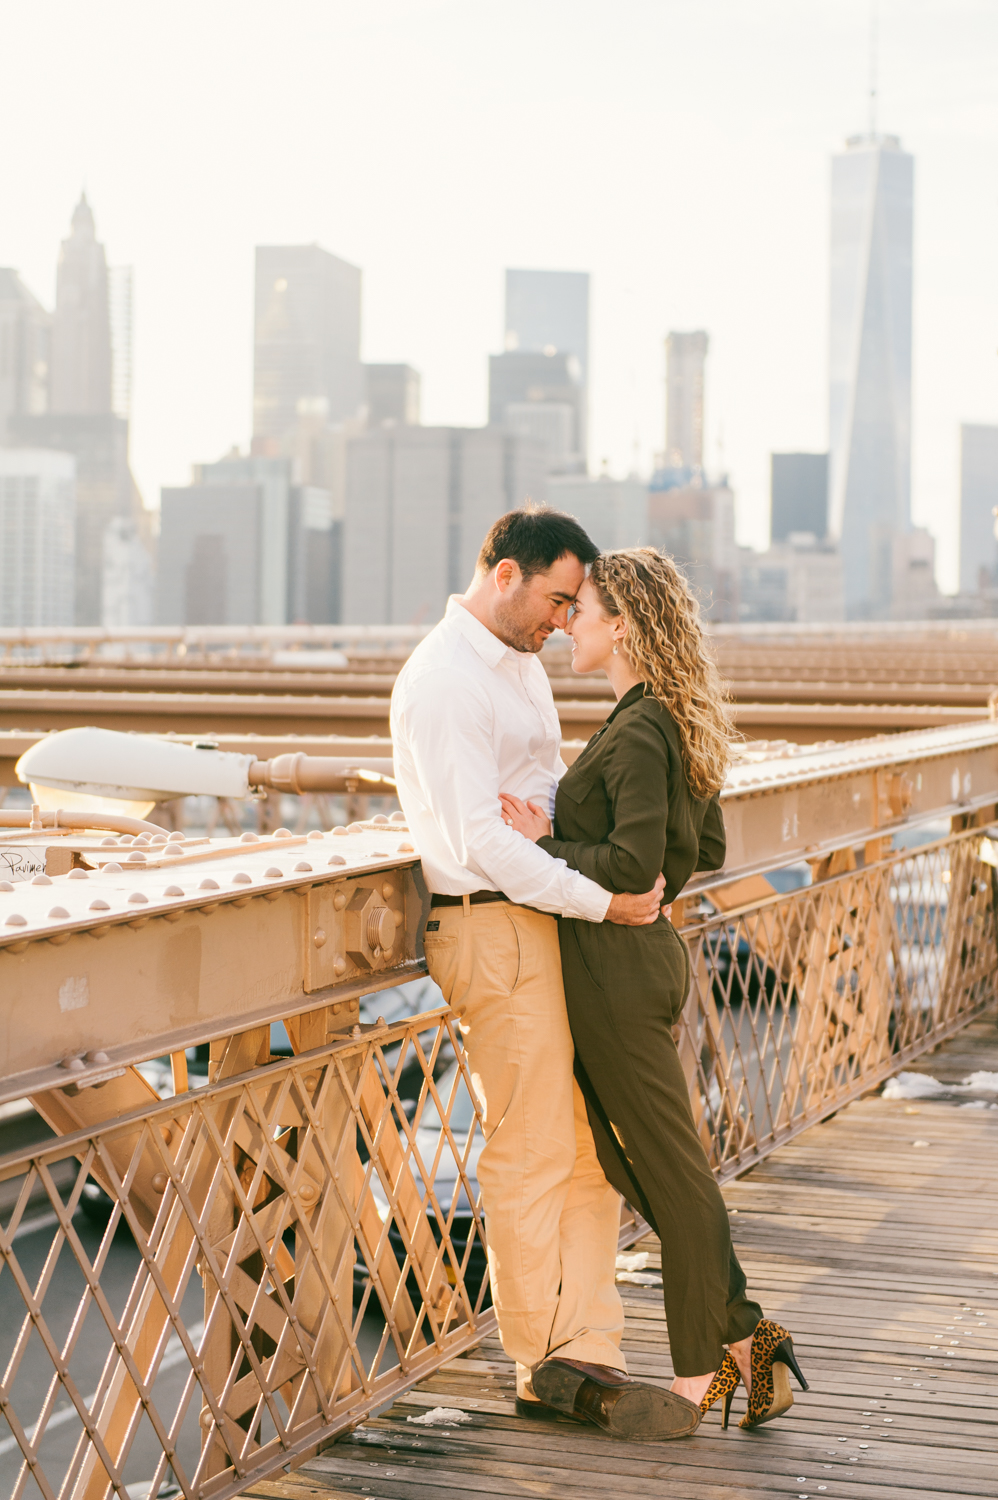 DUMBO.BrooklynBridge.Engagements.MK12.jpg